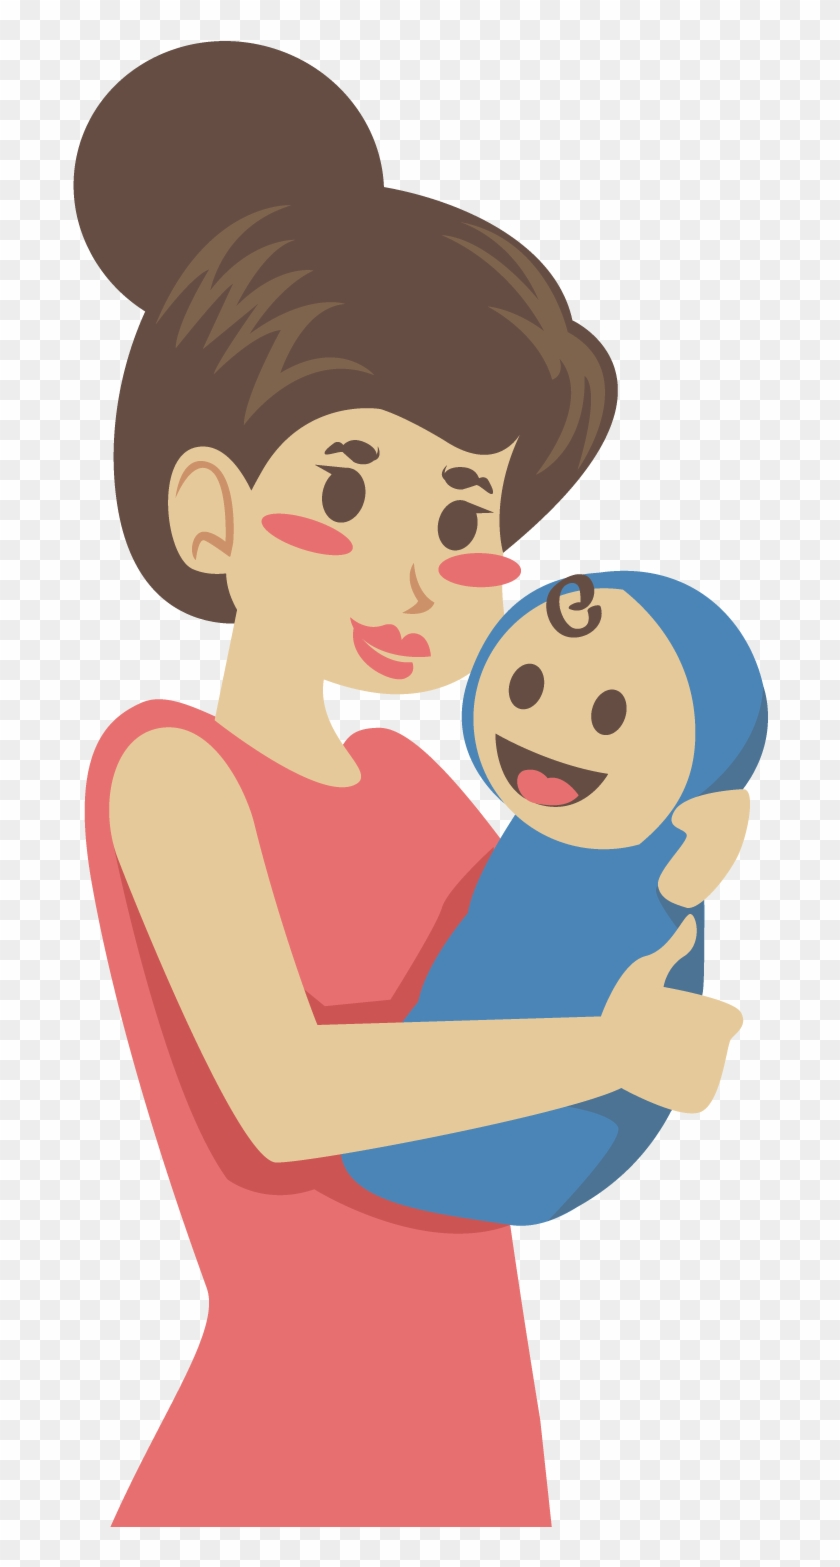 Mother Clip Art - Baby Mom Animation Png #84245